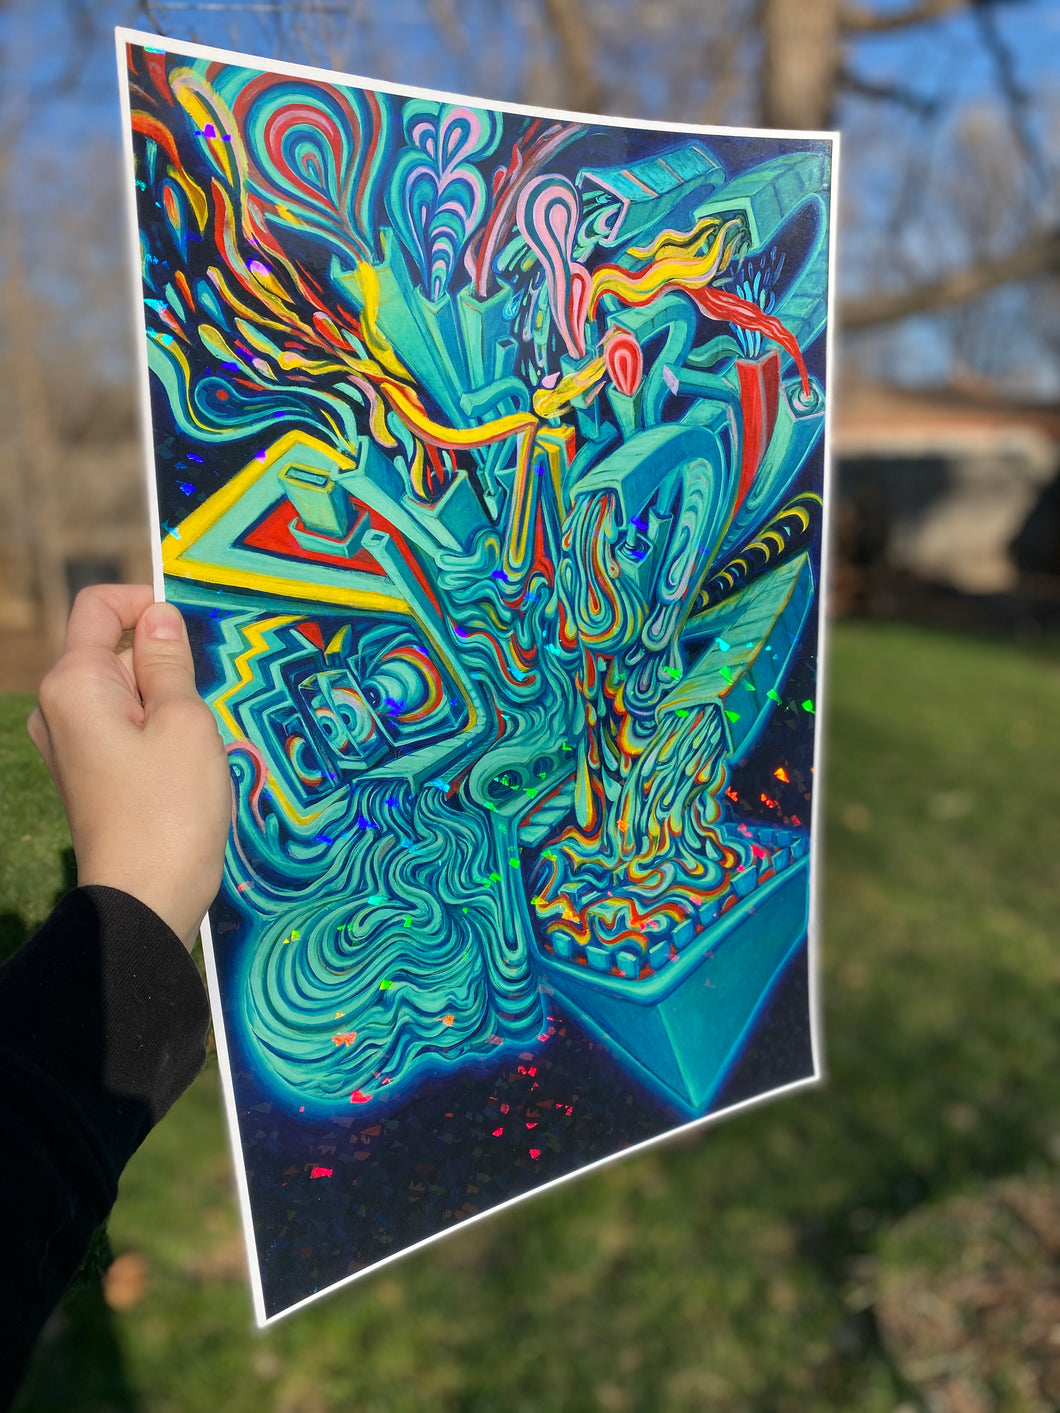 Sustain Yourself - Holographic Print LIMITED EDITION